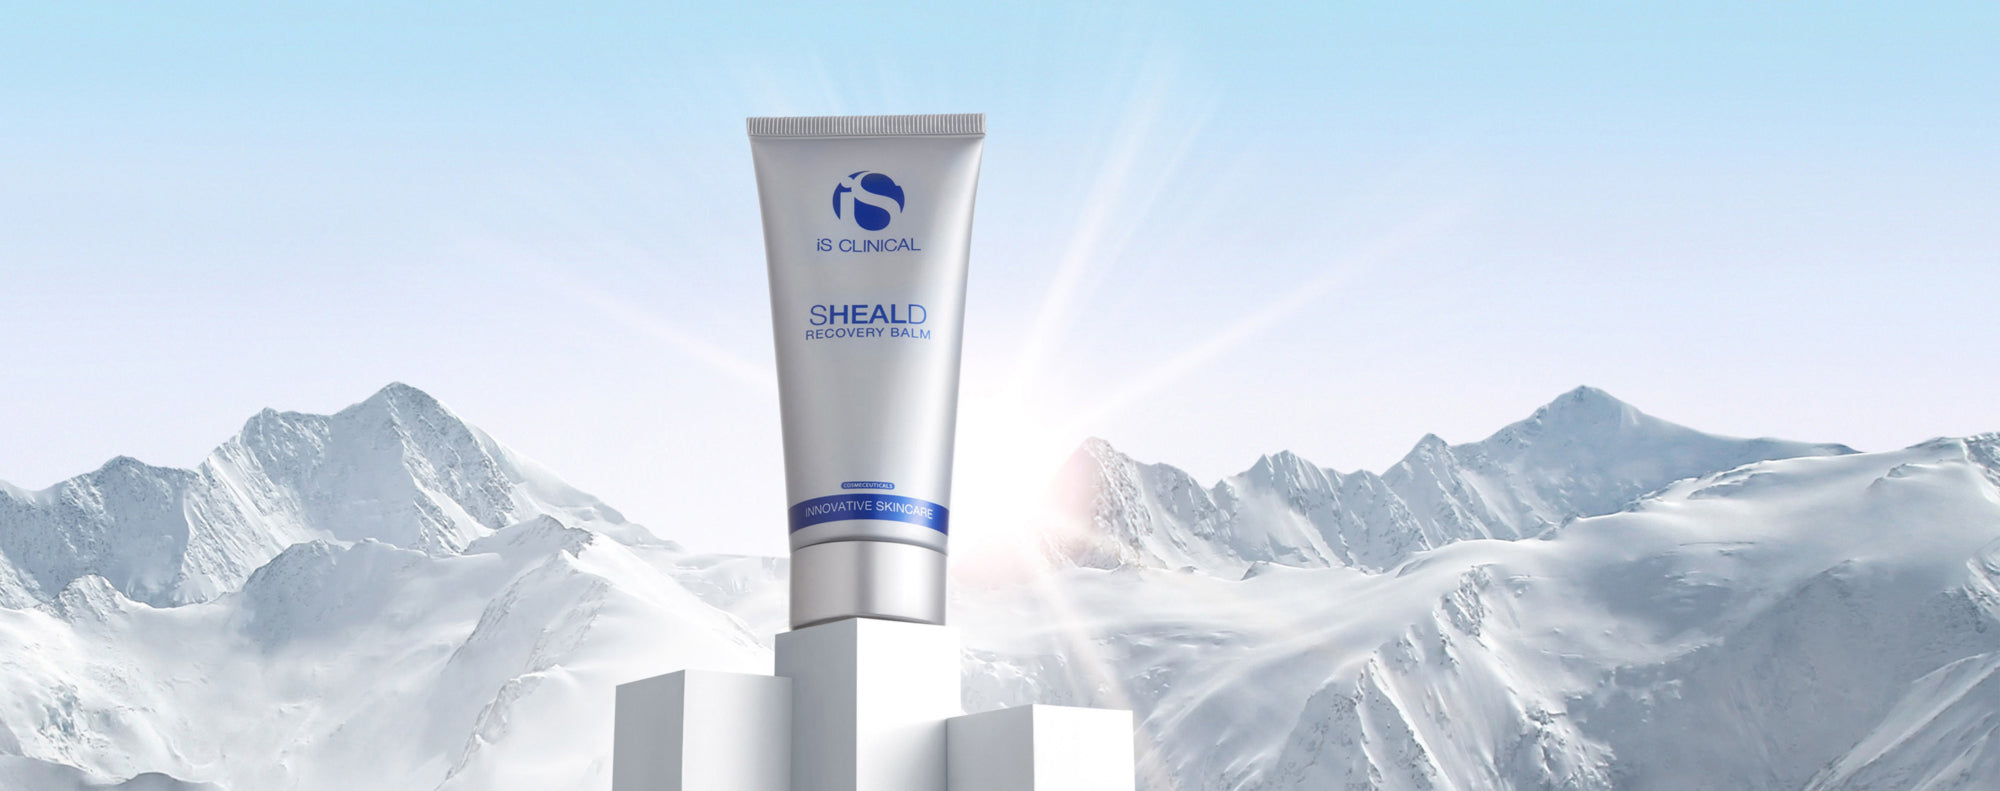 iS Clinical Sheald Recovery Balm from MyExceptionalSkinCare.com Lifestyle